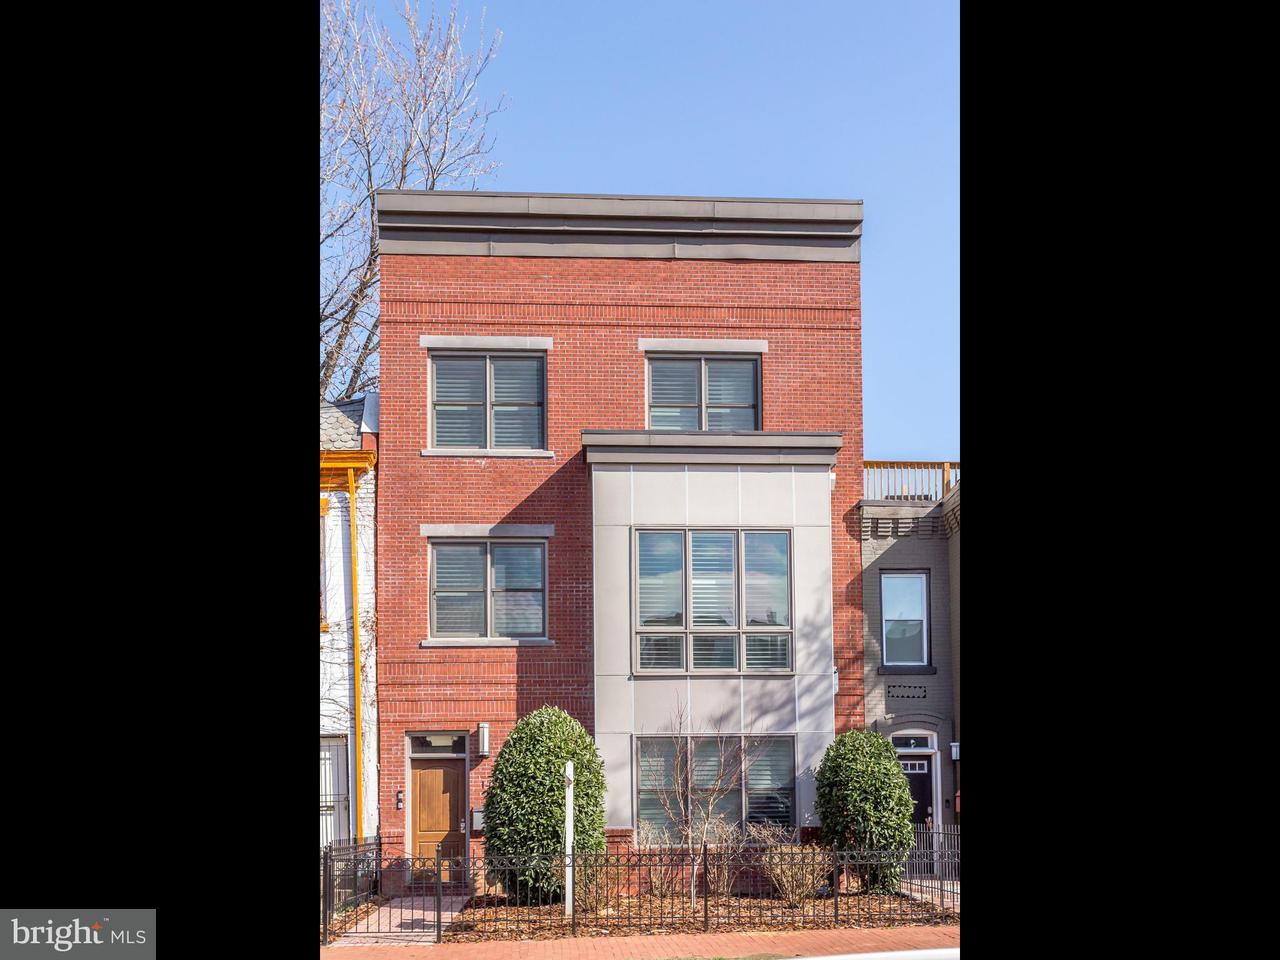 Townhouse for Sale at 1423 1st St Nw #A 1423 1st St Nw #A Washington, District Of Columbia 20001 United States